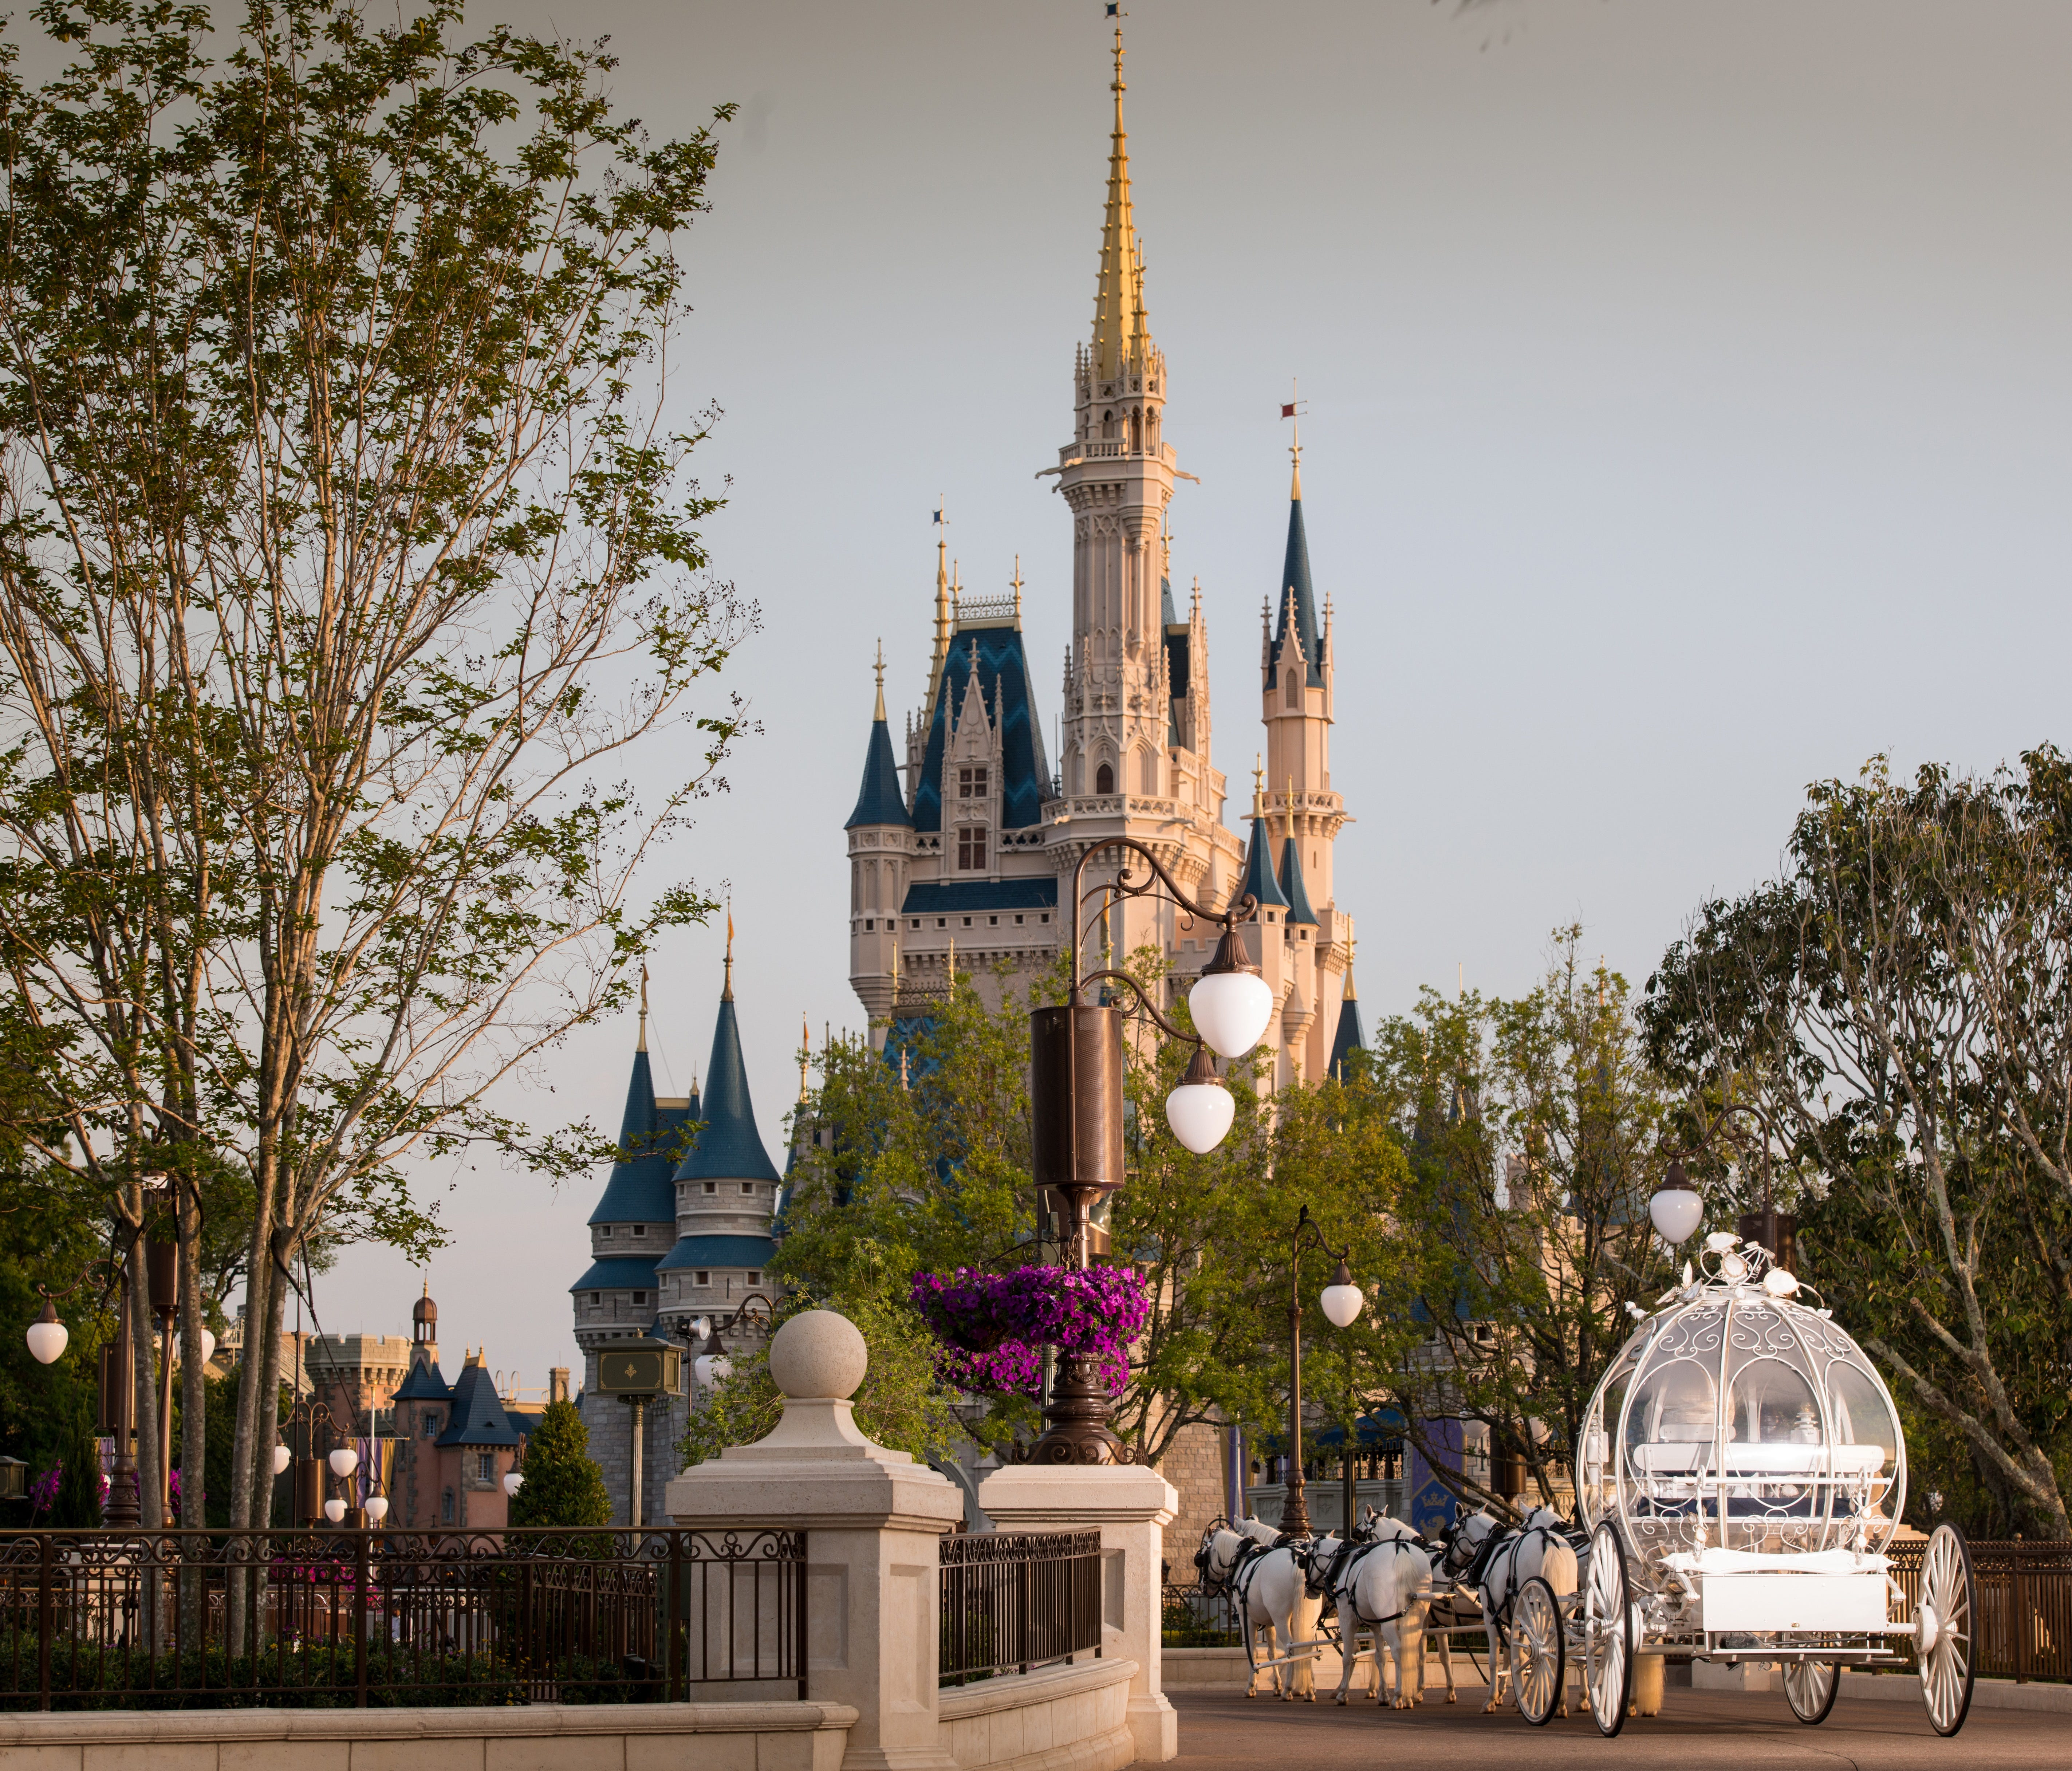 Exclusive disney announces weddings inside the magic kingdom khou exclusive disney announces weddings inside the magic kingdom publicscrutiny Image collections